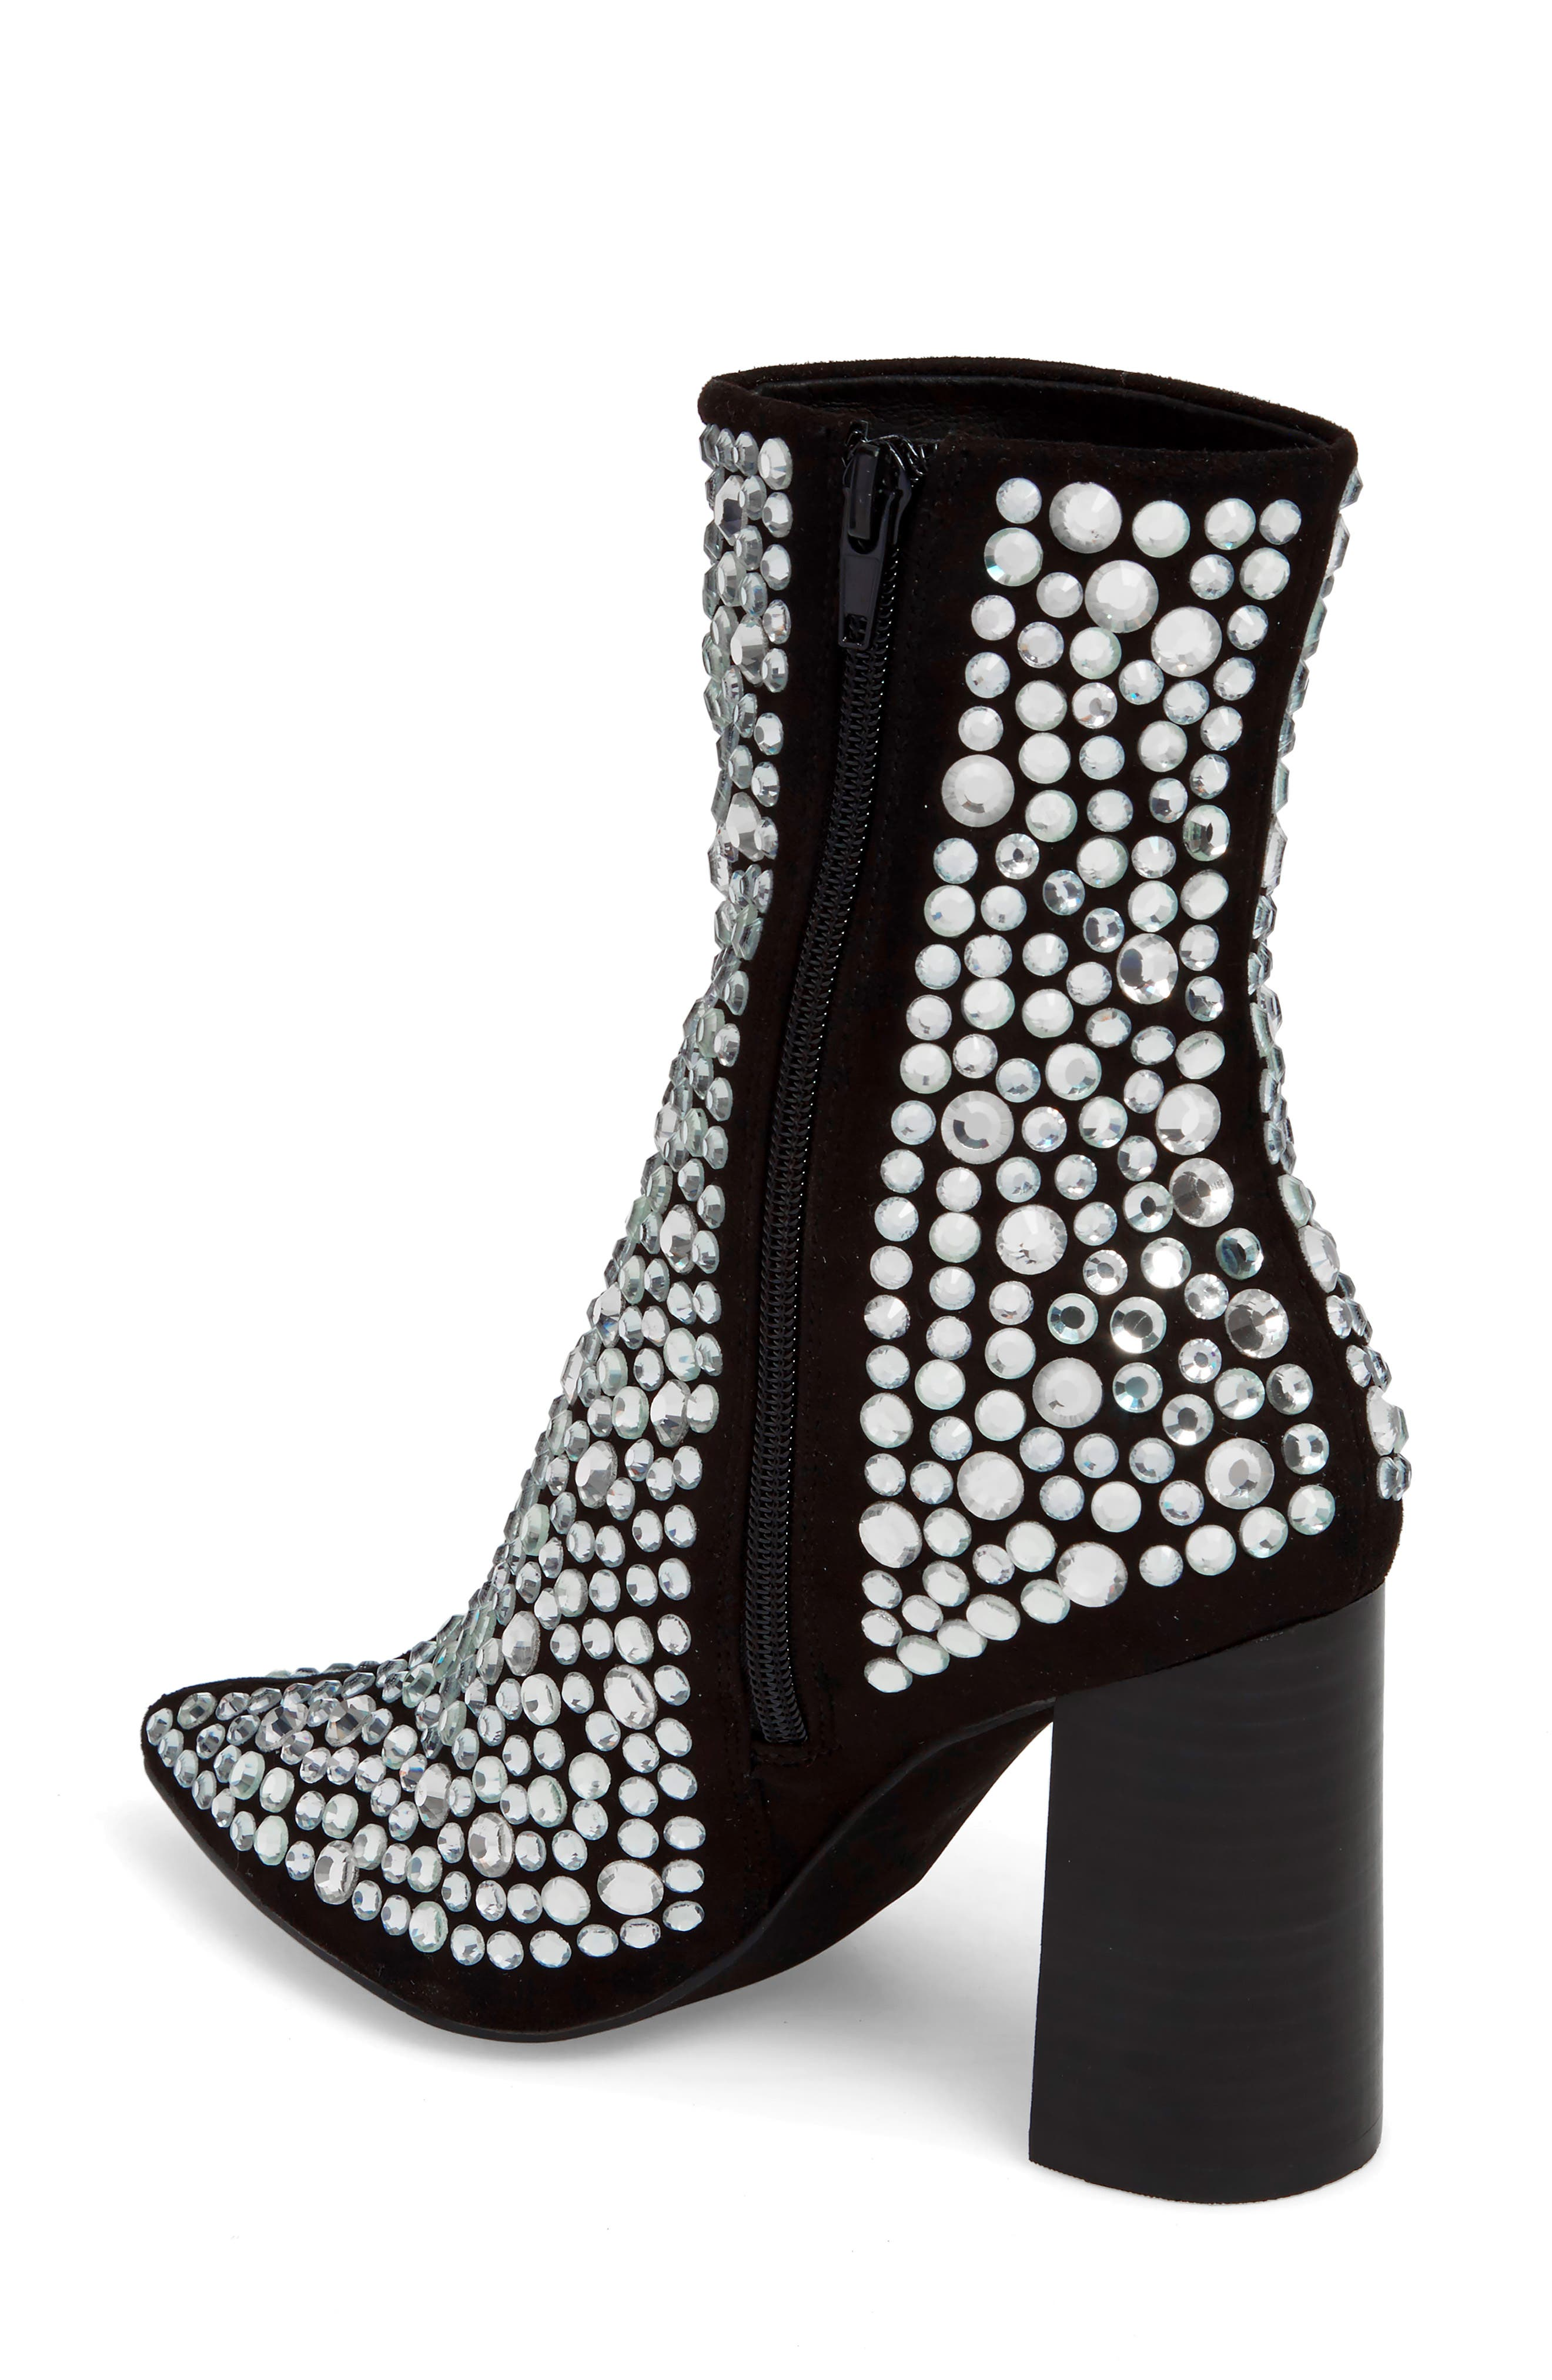 Siren-J Bootie,                             Alternate thumbnail 2, color,                             Black Faux Suede